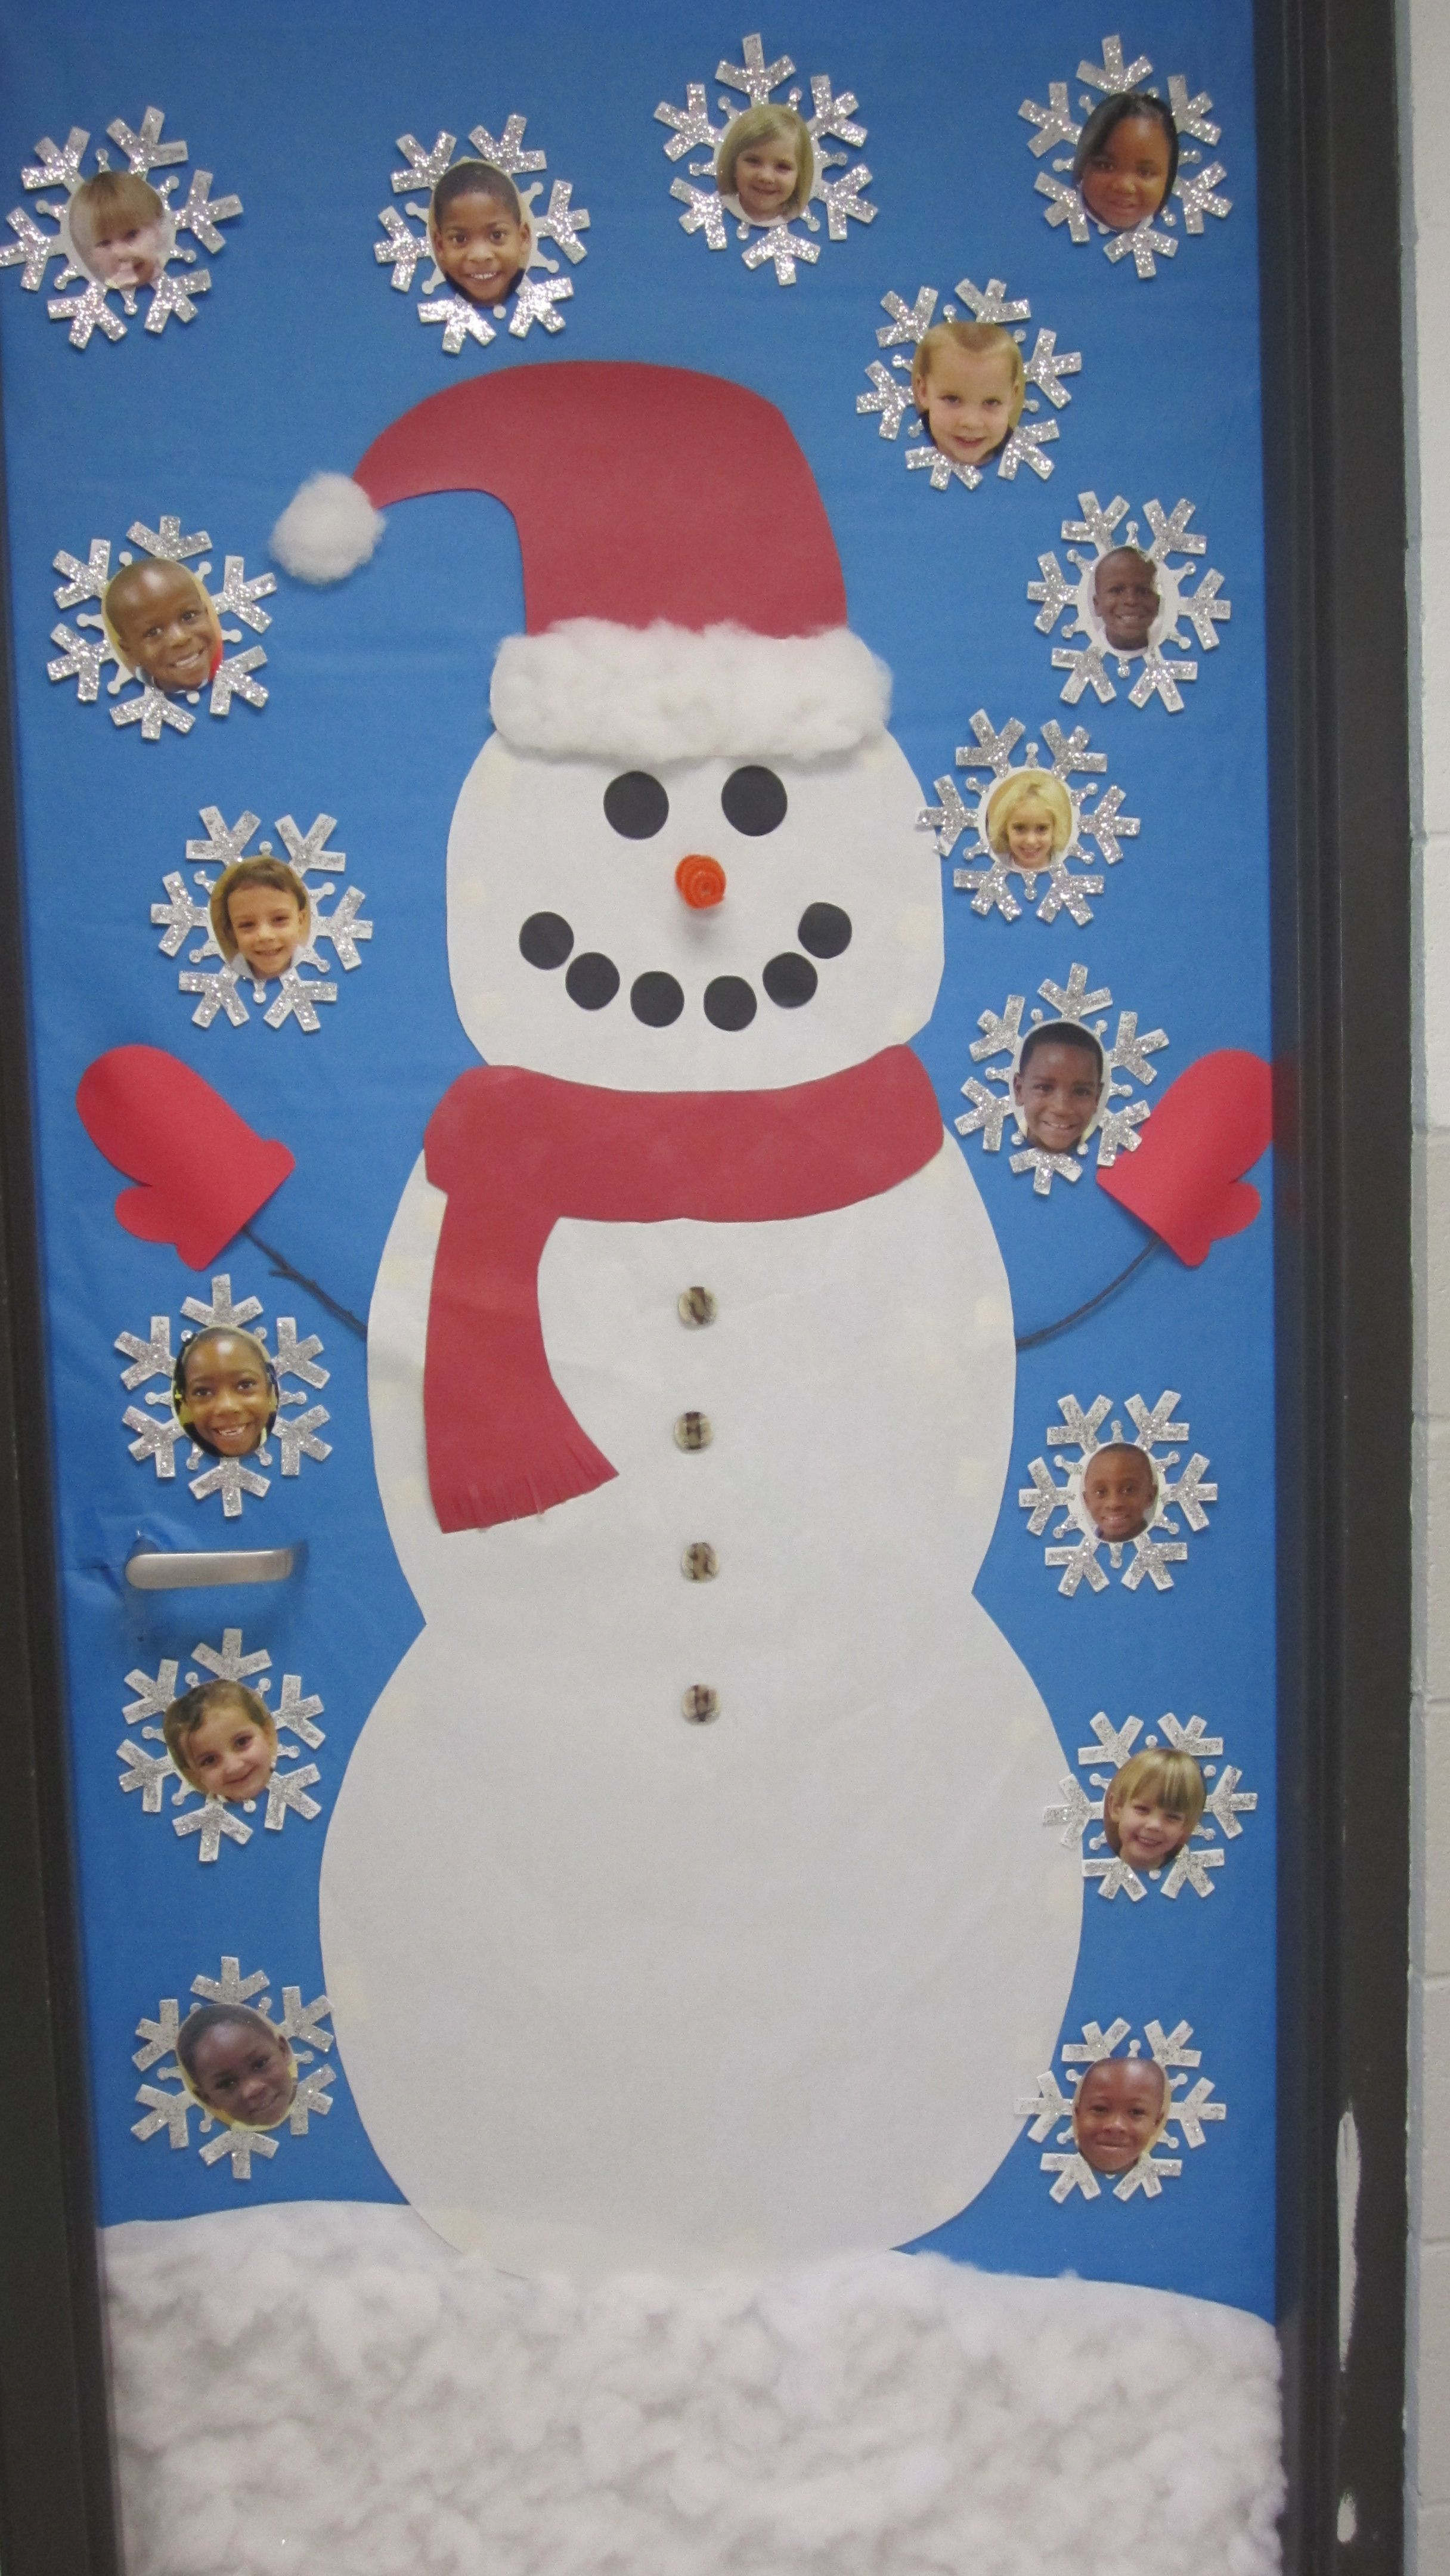 January classroom door decoration ideas - Bulletin Board Ideas A Very Cute Frosty The Snowman Classroom Door Display That Includes Snowflakes With Students Face In The Middle Of Them